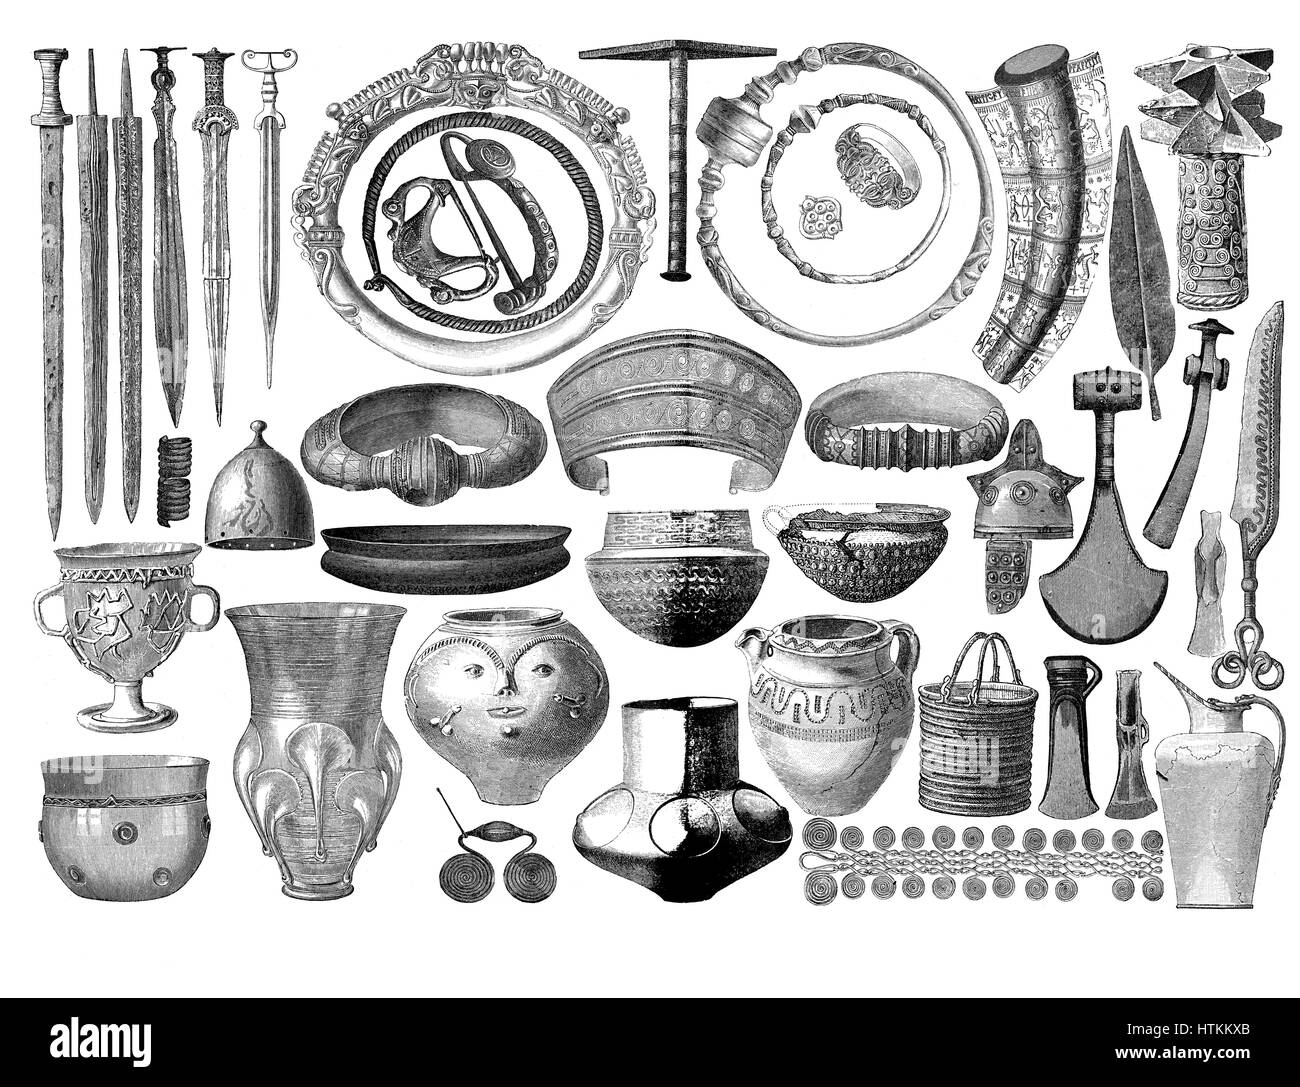 Engraving reproducing artifacts, weapons,jewelry, pottery , tools found in prehistorical tombs in Germany - Stock Image